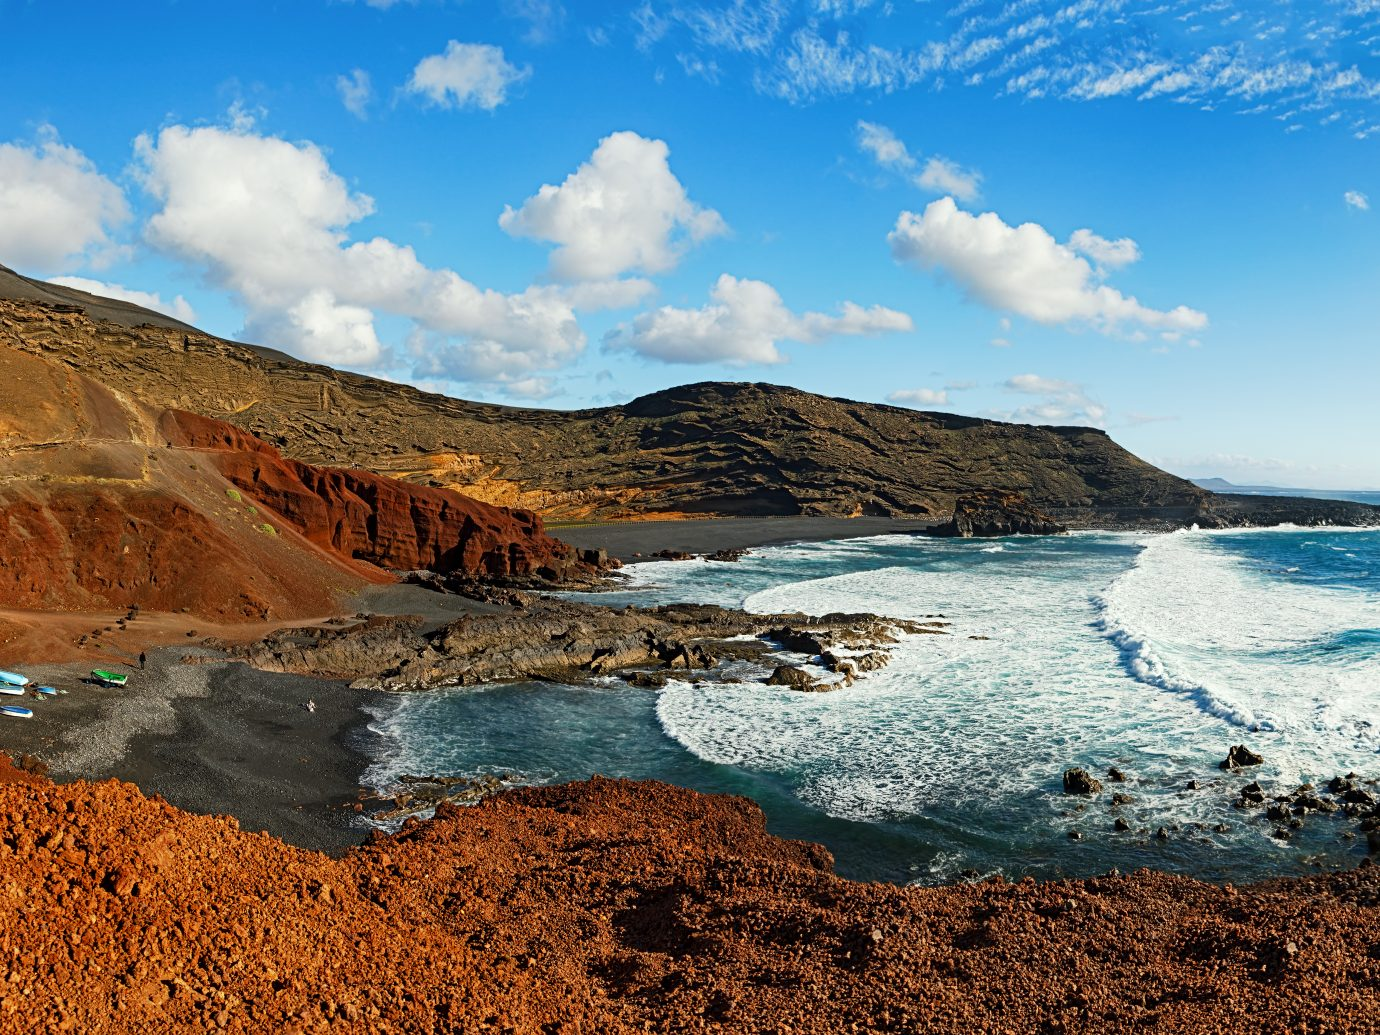 Panoramic view of El Golfo black sand beach near Green Lagoon in Lanzarote, Canary Islands.